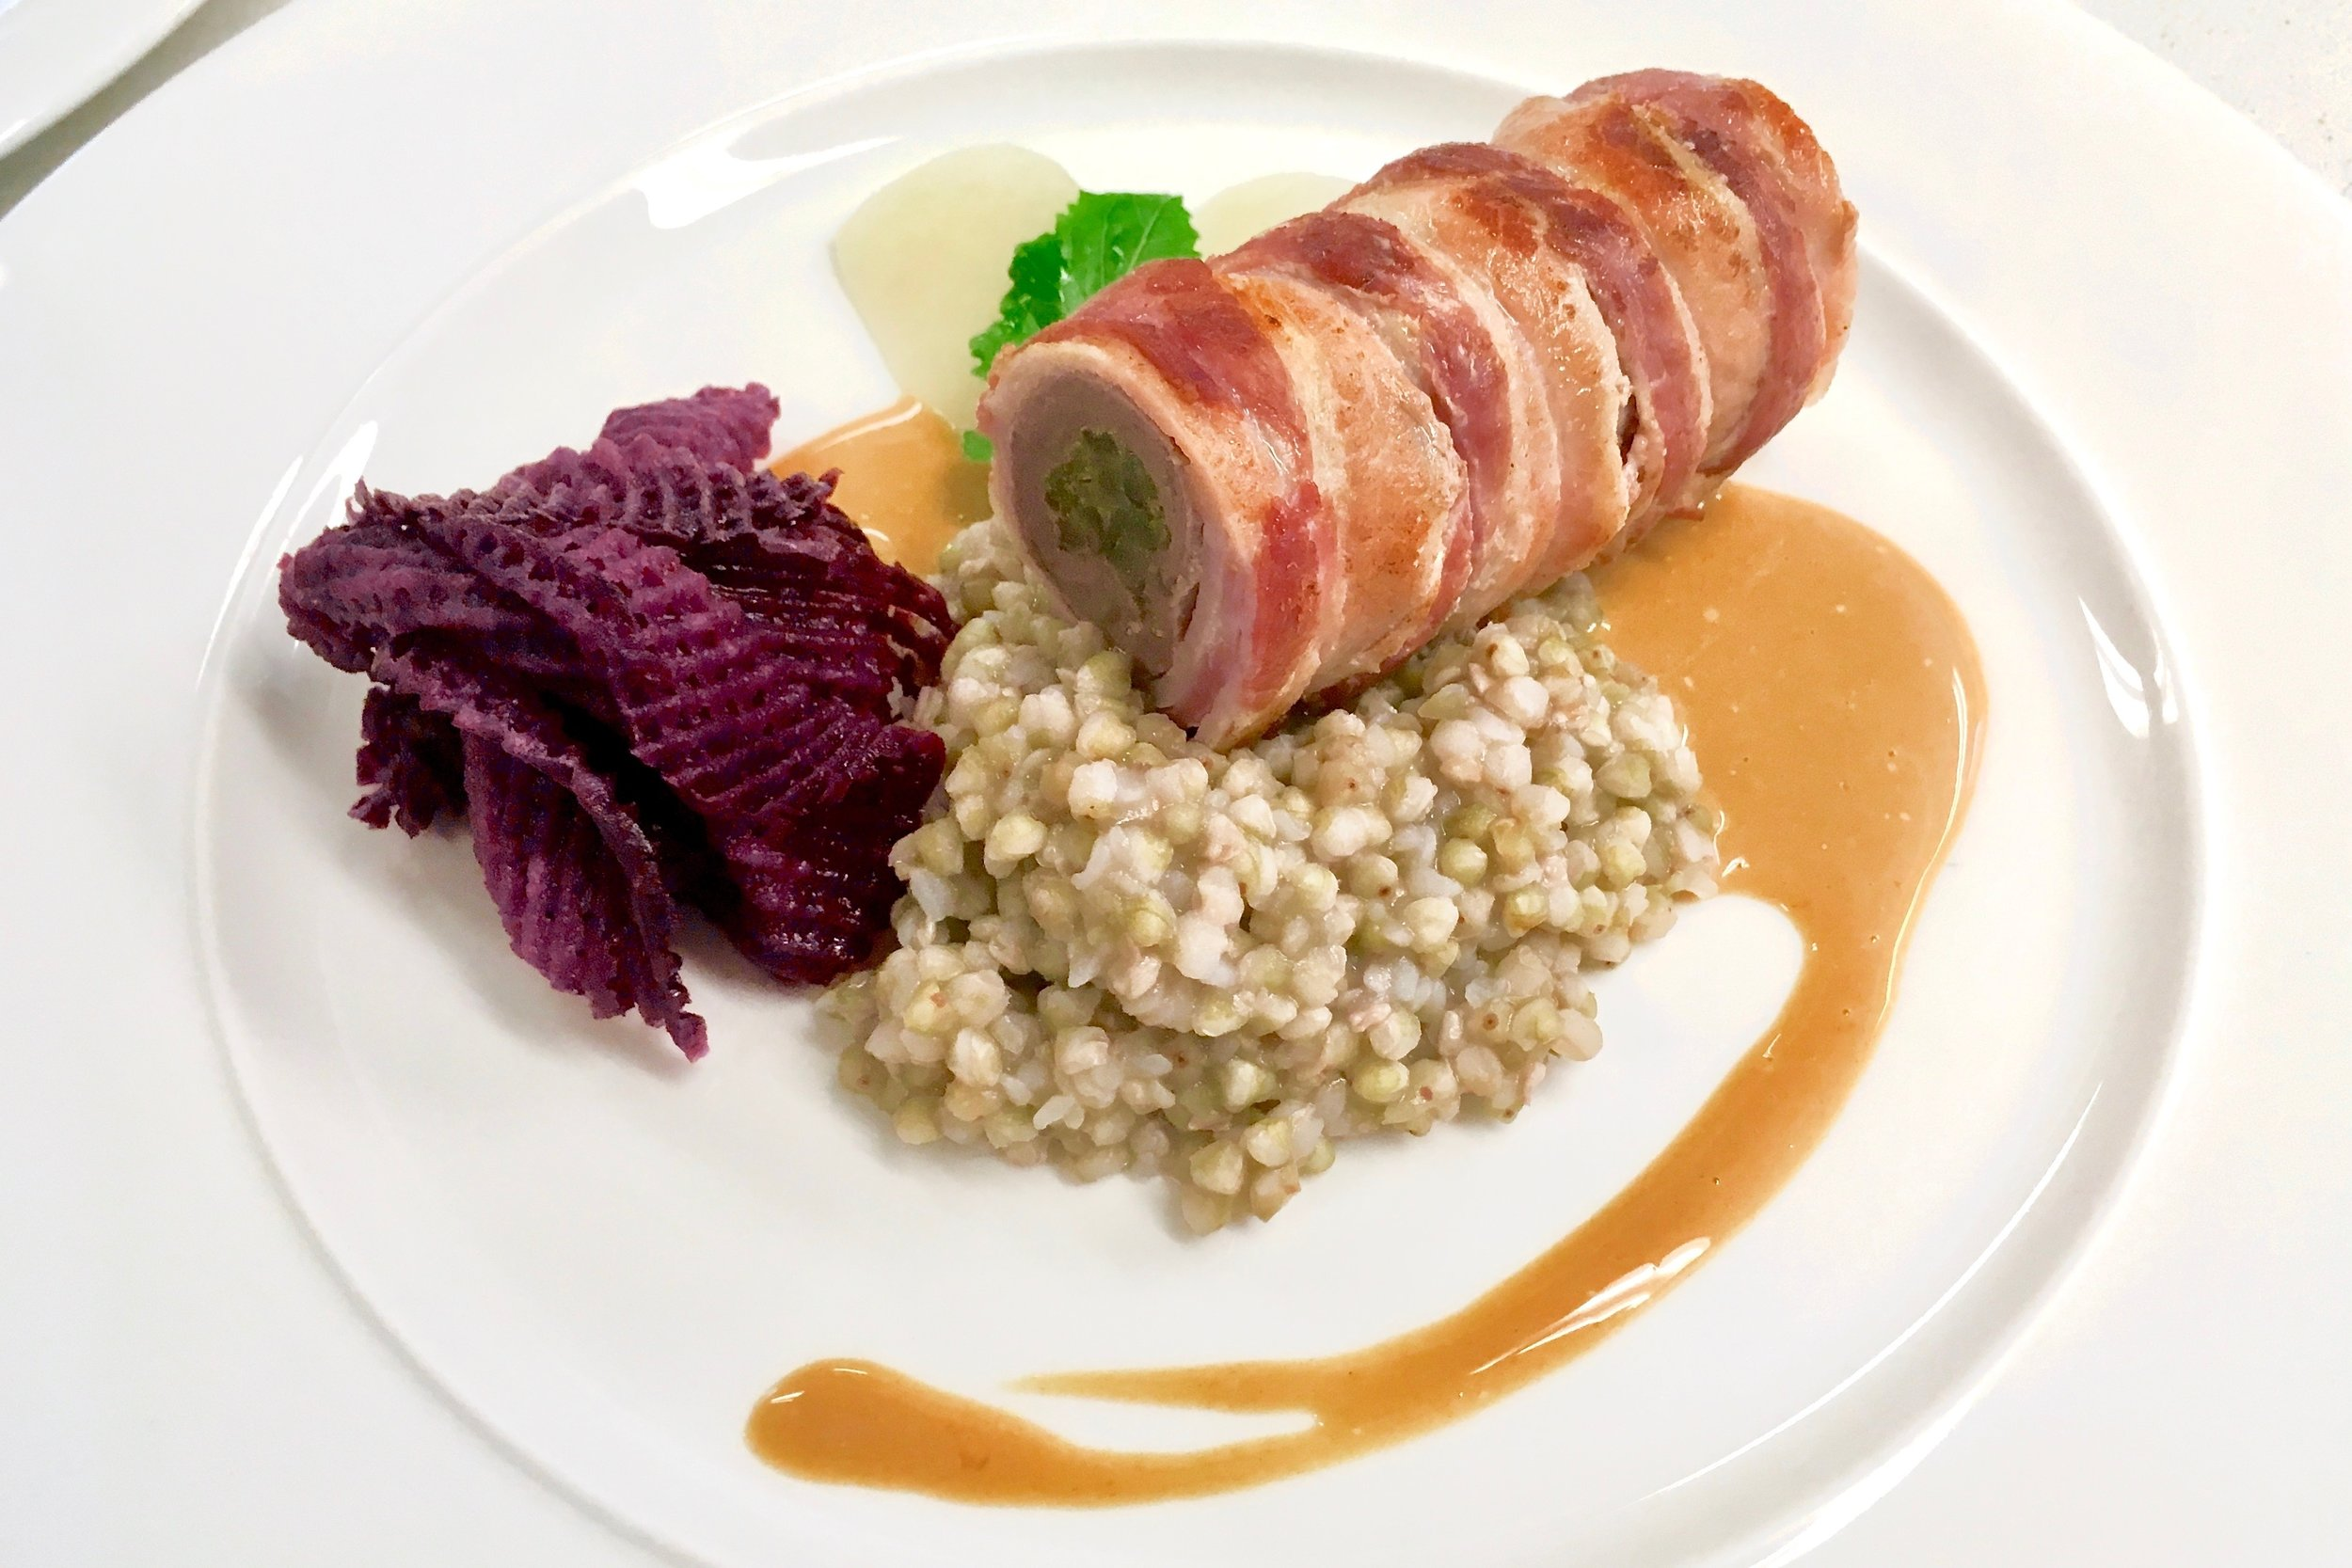 Beef roulade with pickled beetroot and buckwheat groats